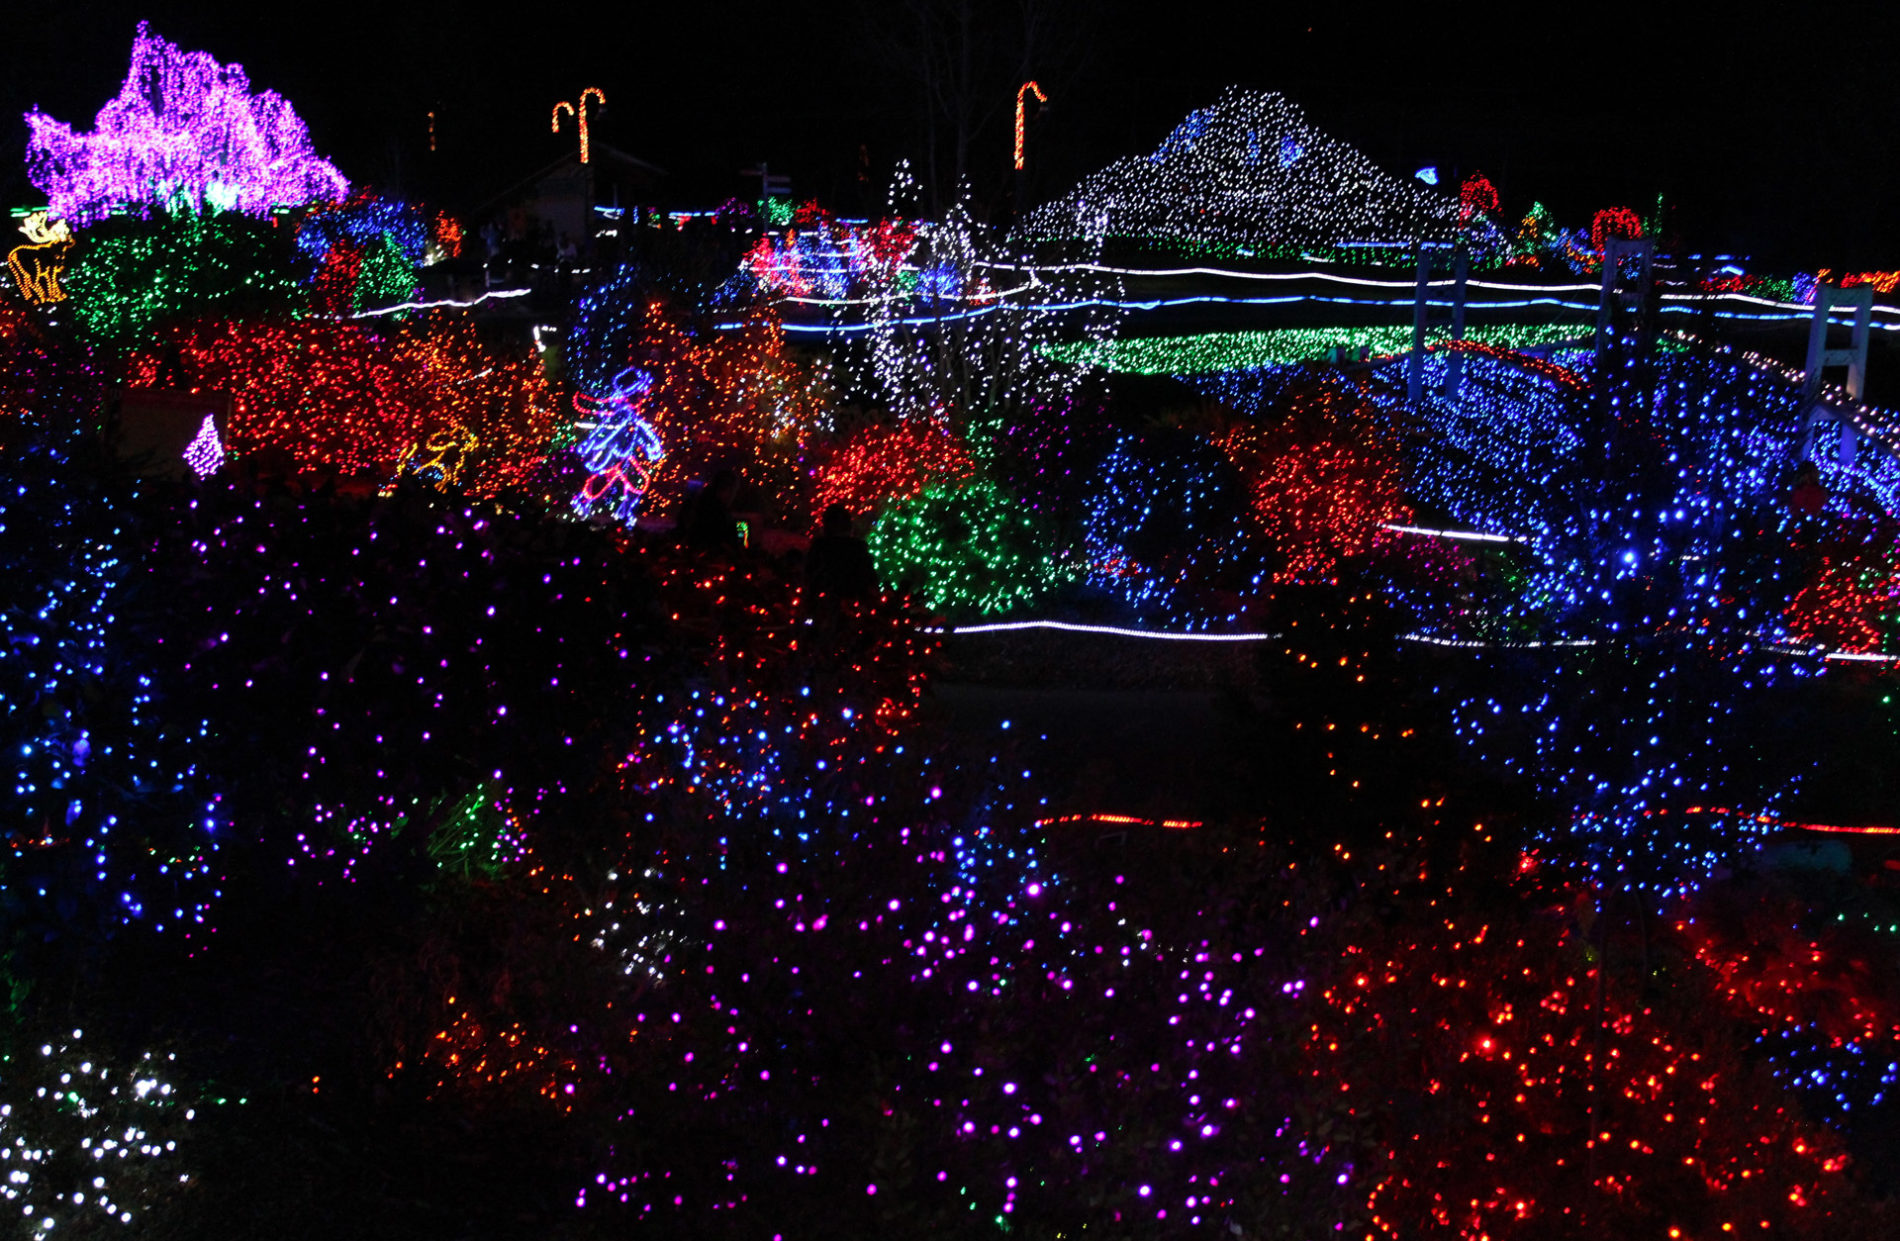 hundreds of colorful twinkling holiday lights and displays